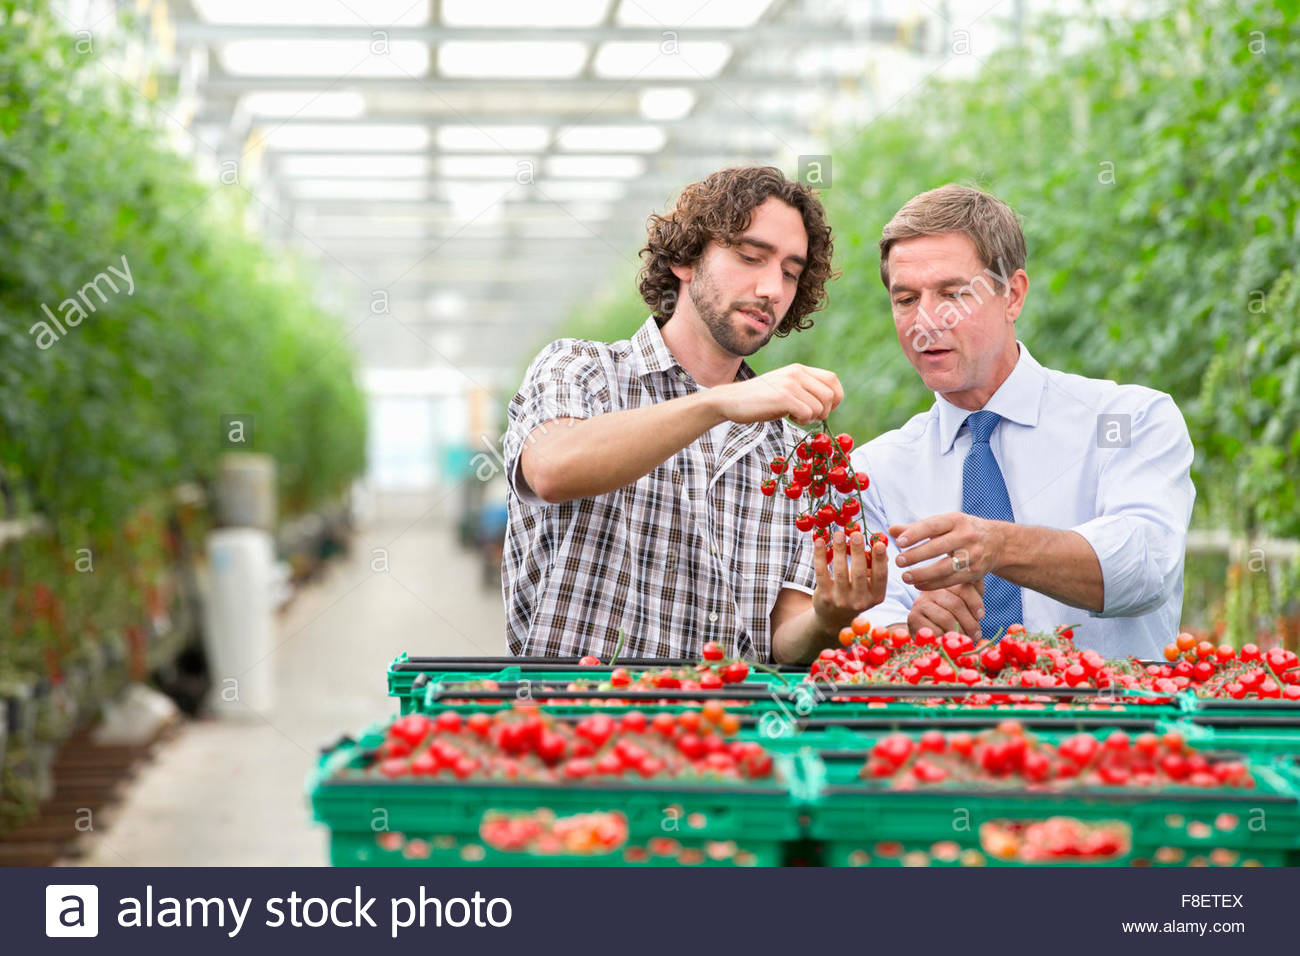 Businessman and grower inspecting ripe red vine tomatoes in crates in greenhouse - Stock Image